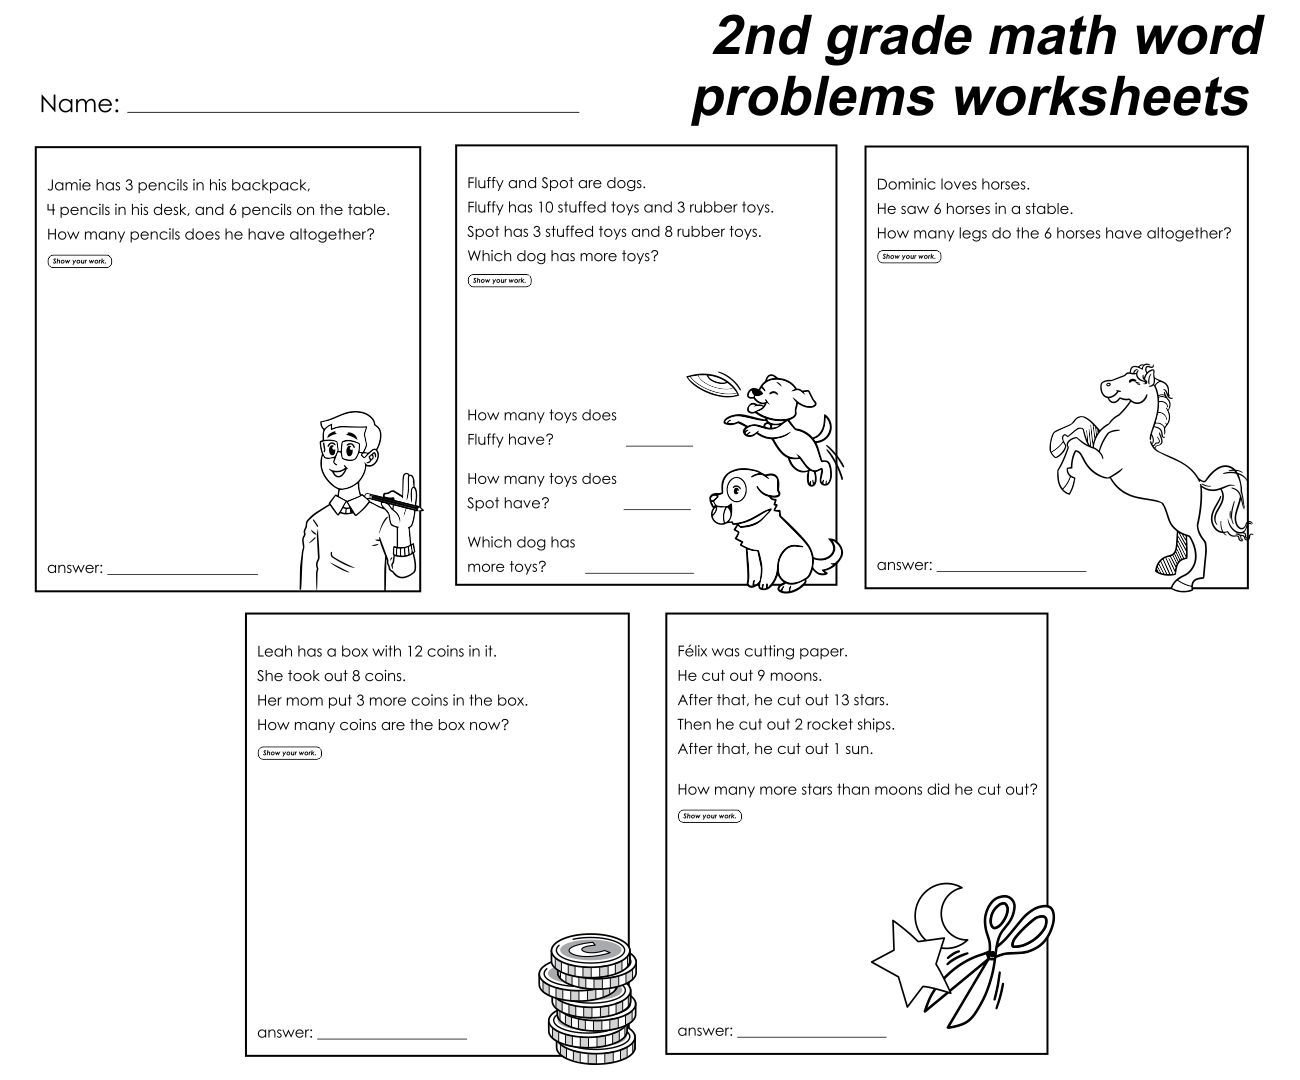 Worksheet Stories And Questions For 3rd Grade 2nd grade story scalien 7 best images of problems printable grade